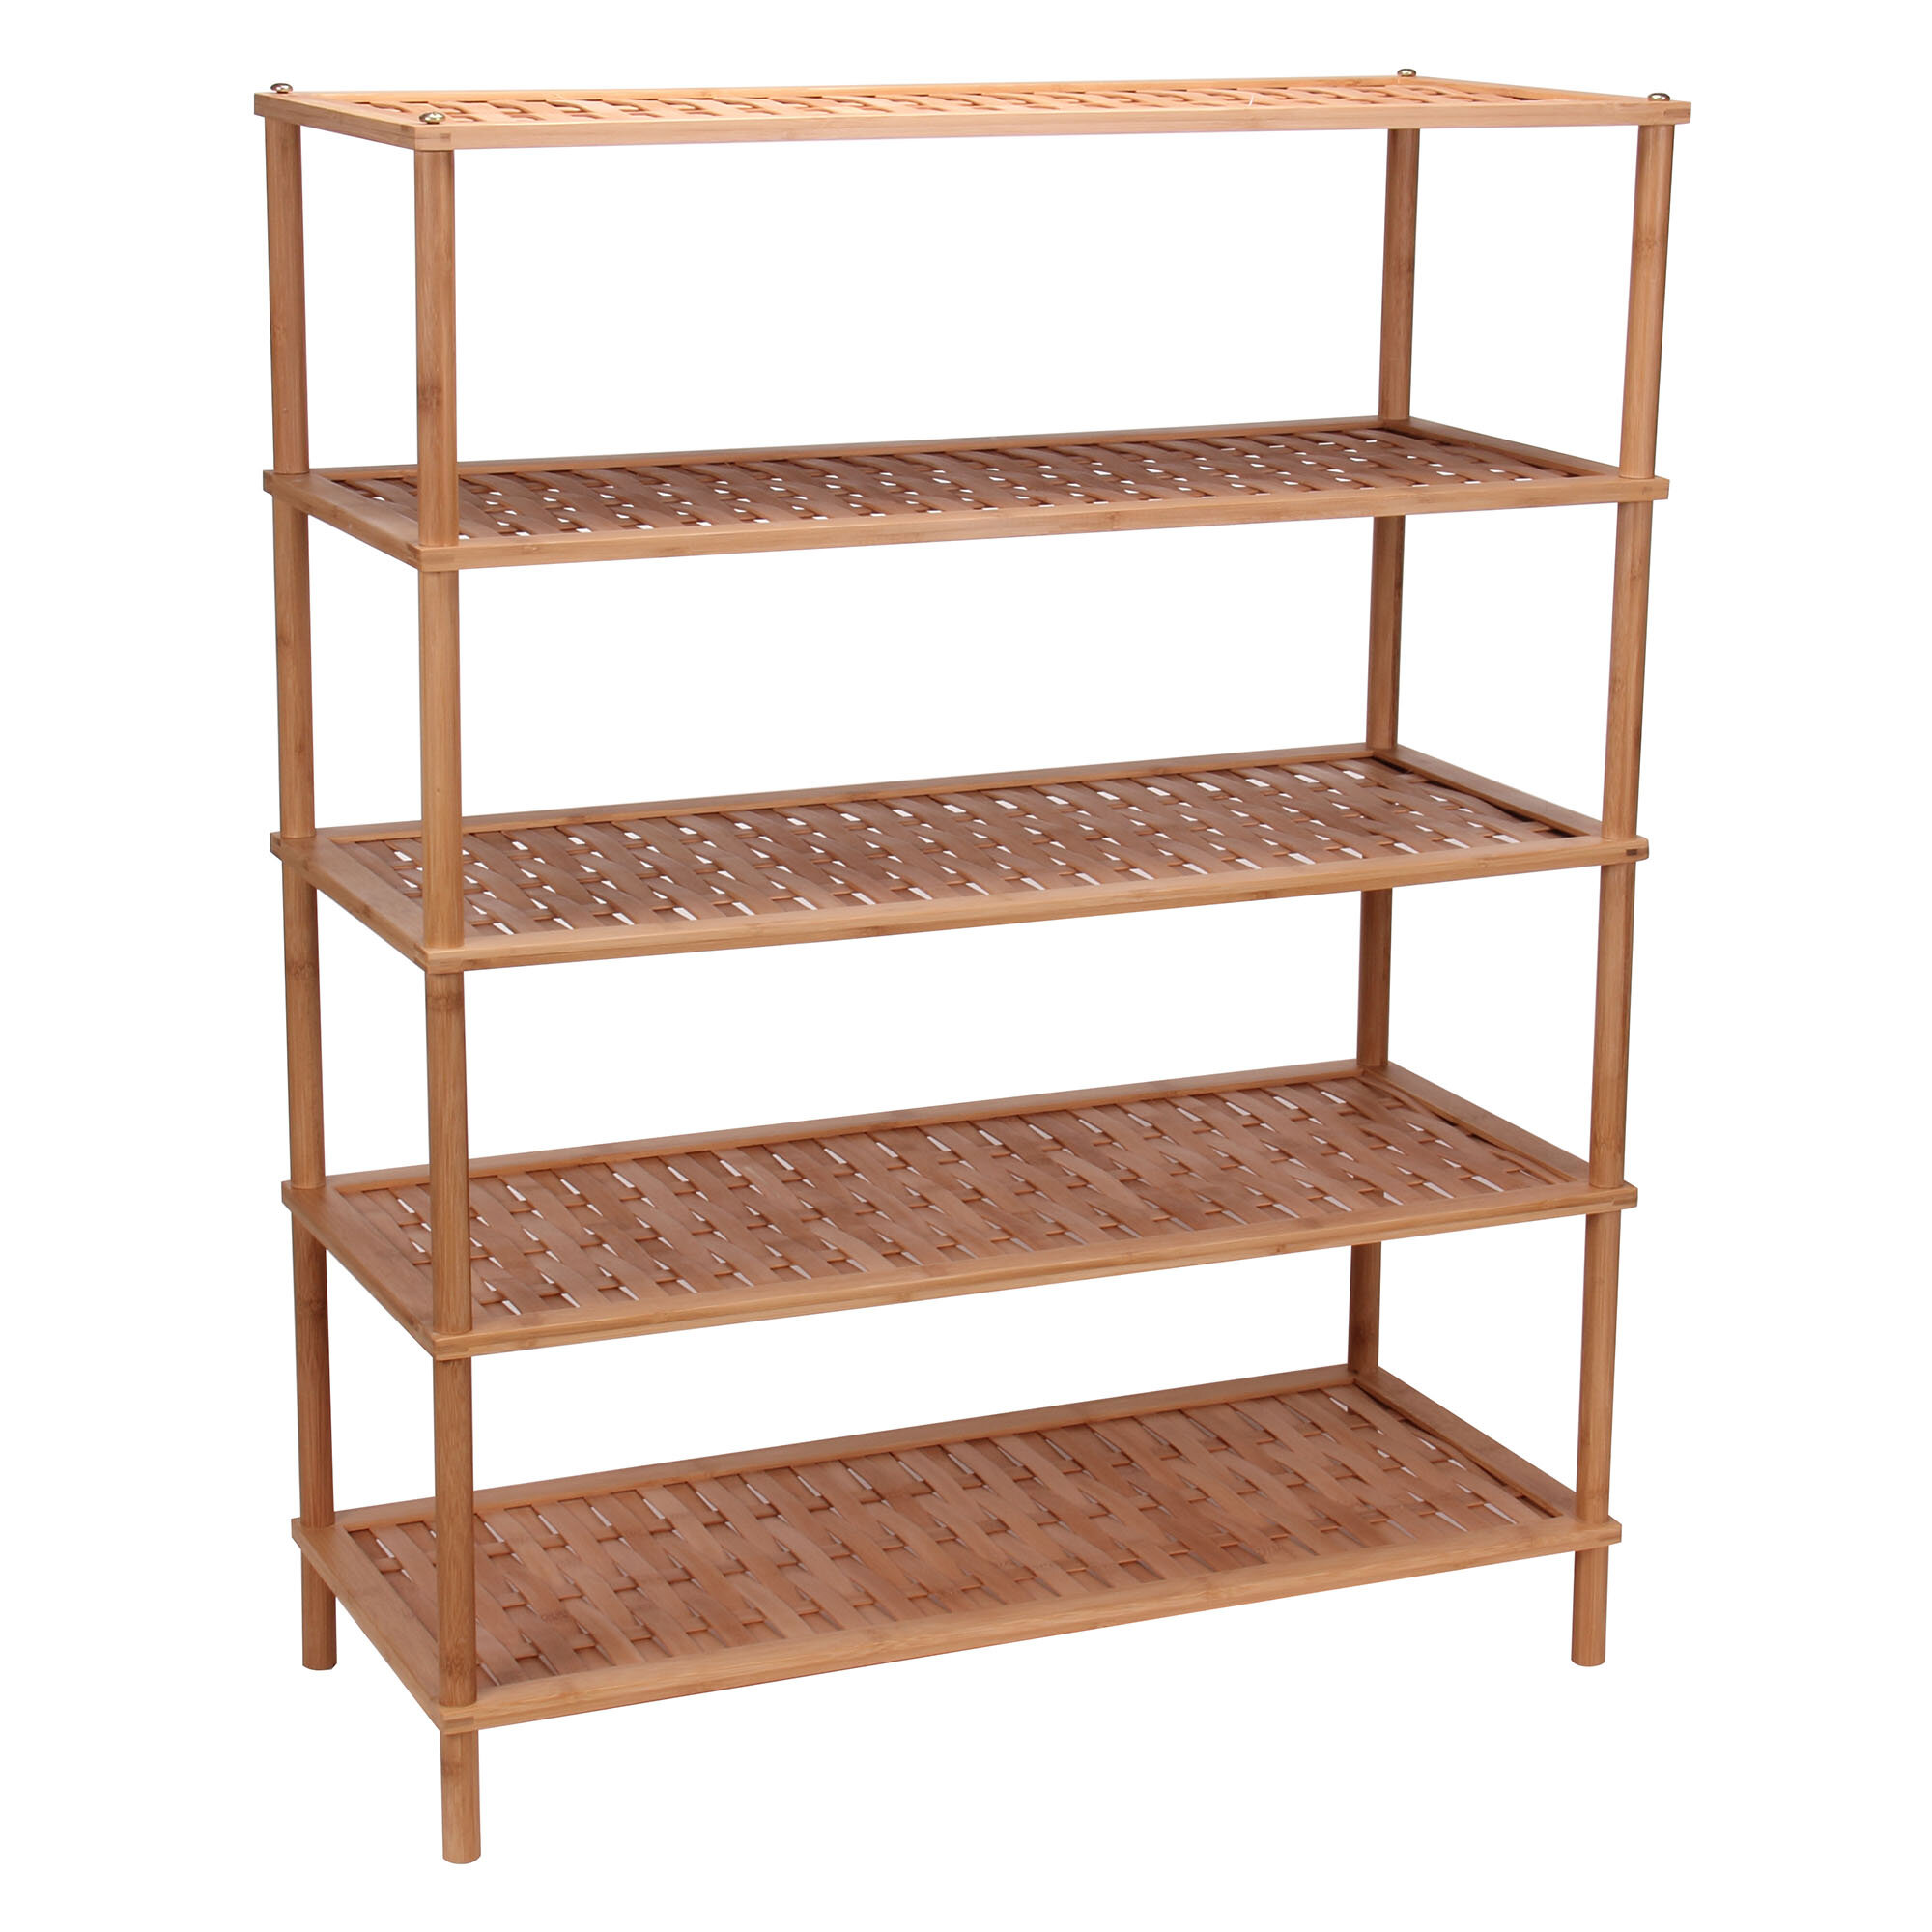 on do with made polished wife easy top id rings steel adjustable scaffolding stainless happy cheap life parts shoe shelf hight from to rack